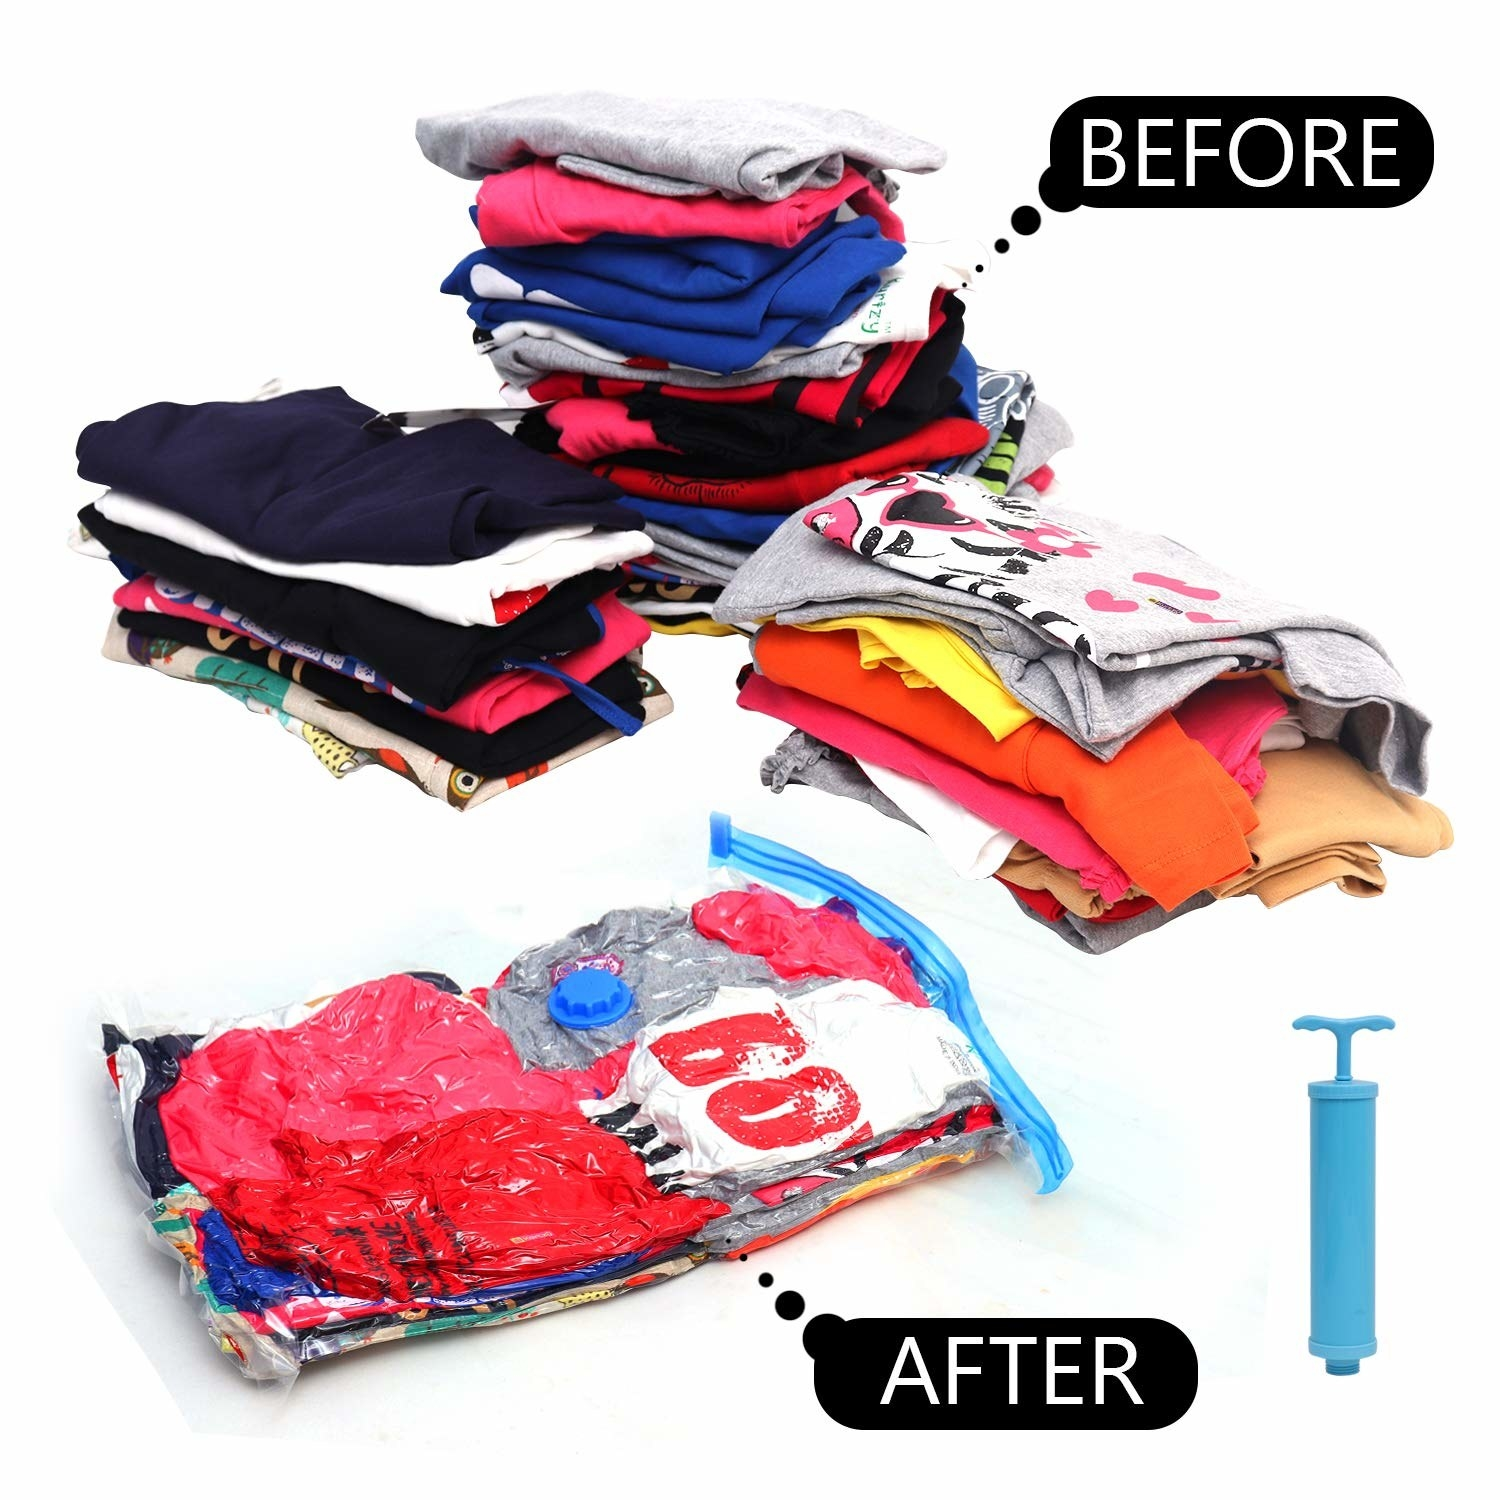 Before and after images of multiple folded clothes in the vacuum bag and outside it. The ones outside take much more space